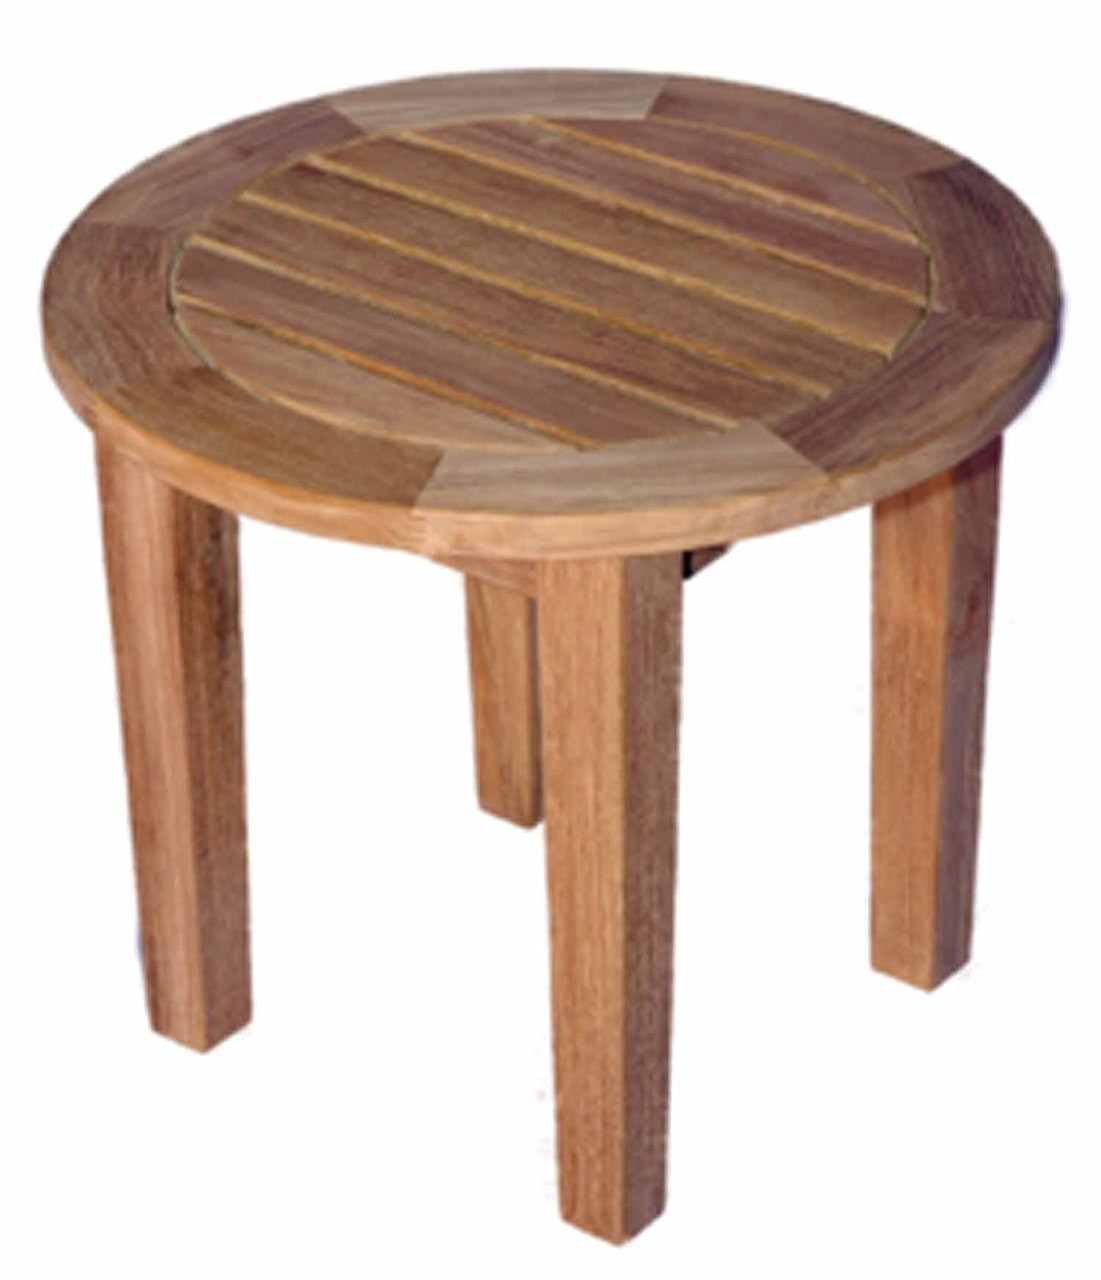 Teak round end table dia by regal teak great for Teak side table outdoor